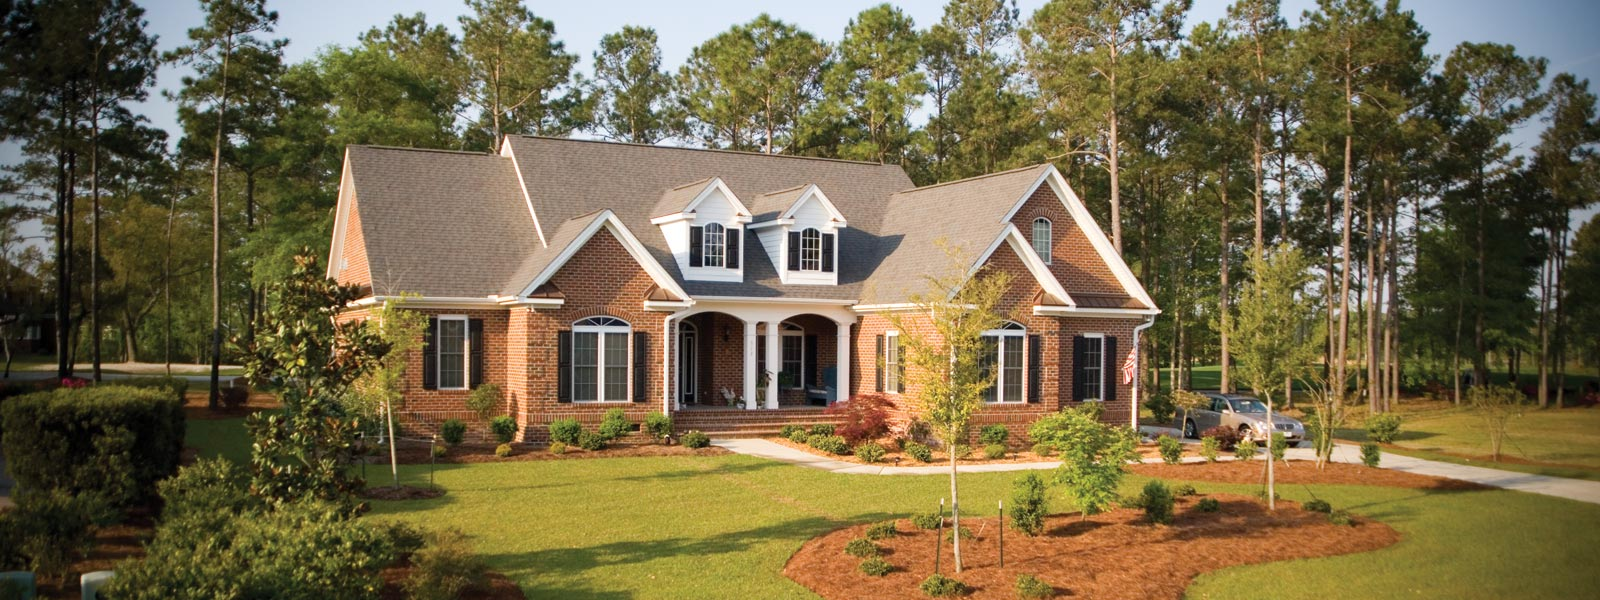 Ocean Ridge Plantation | NC Coastal Community | Retire to North Carolina